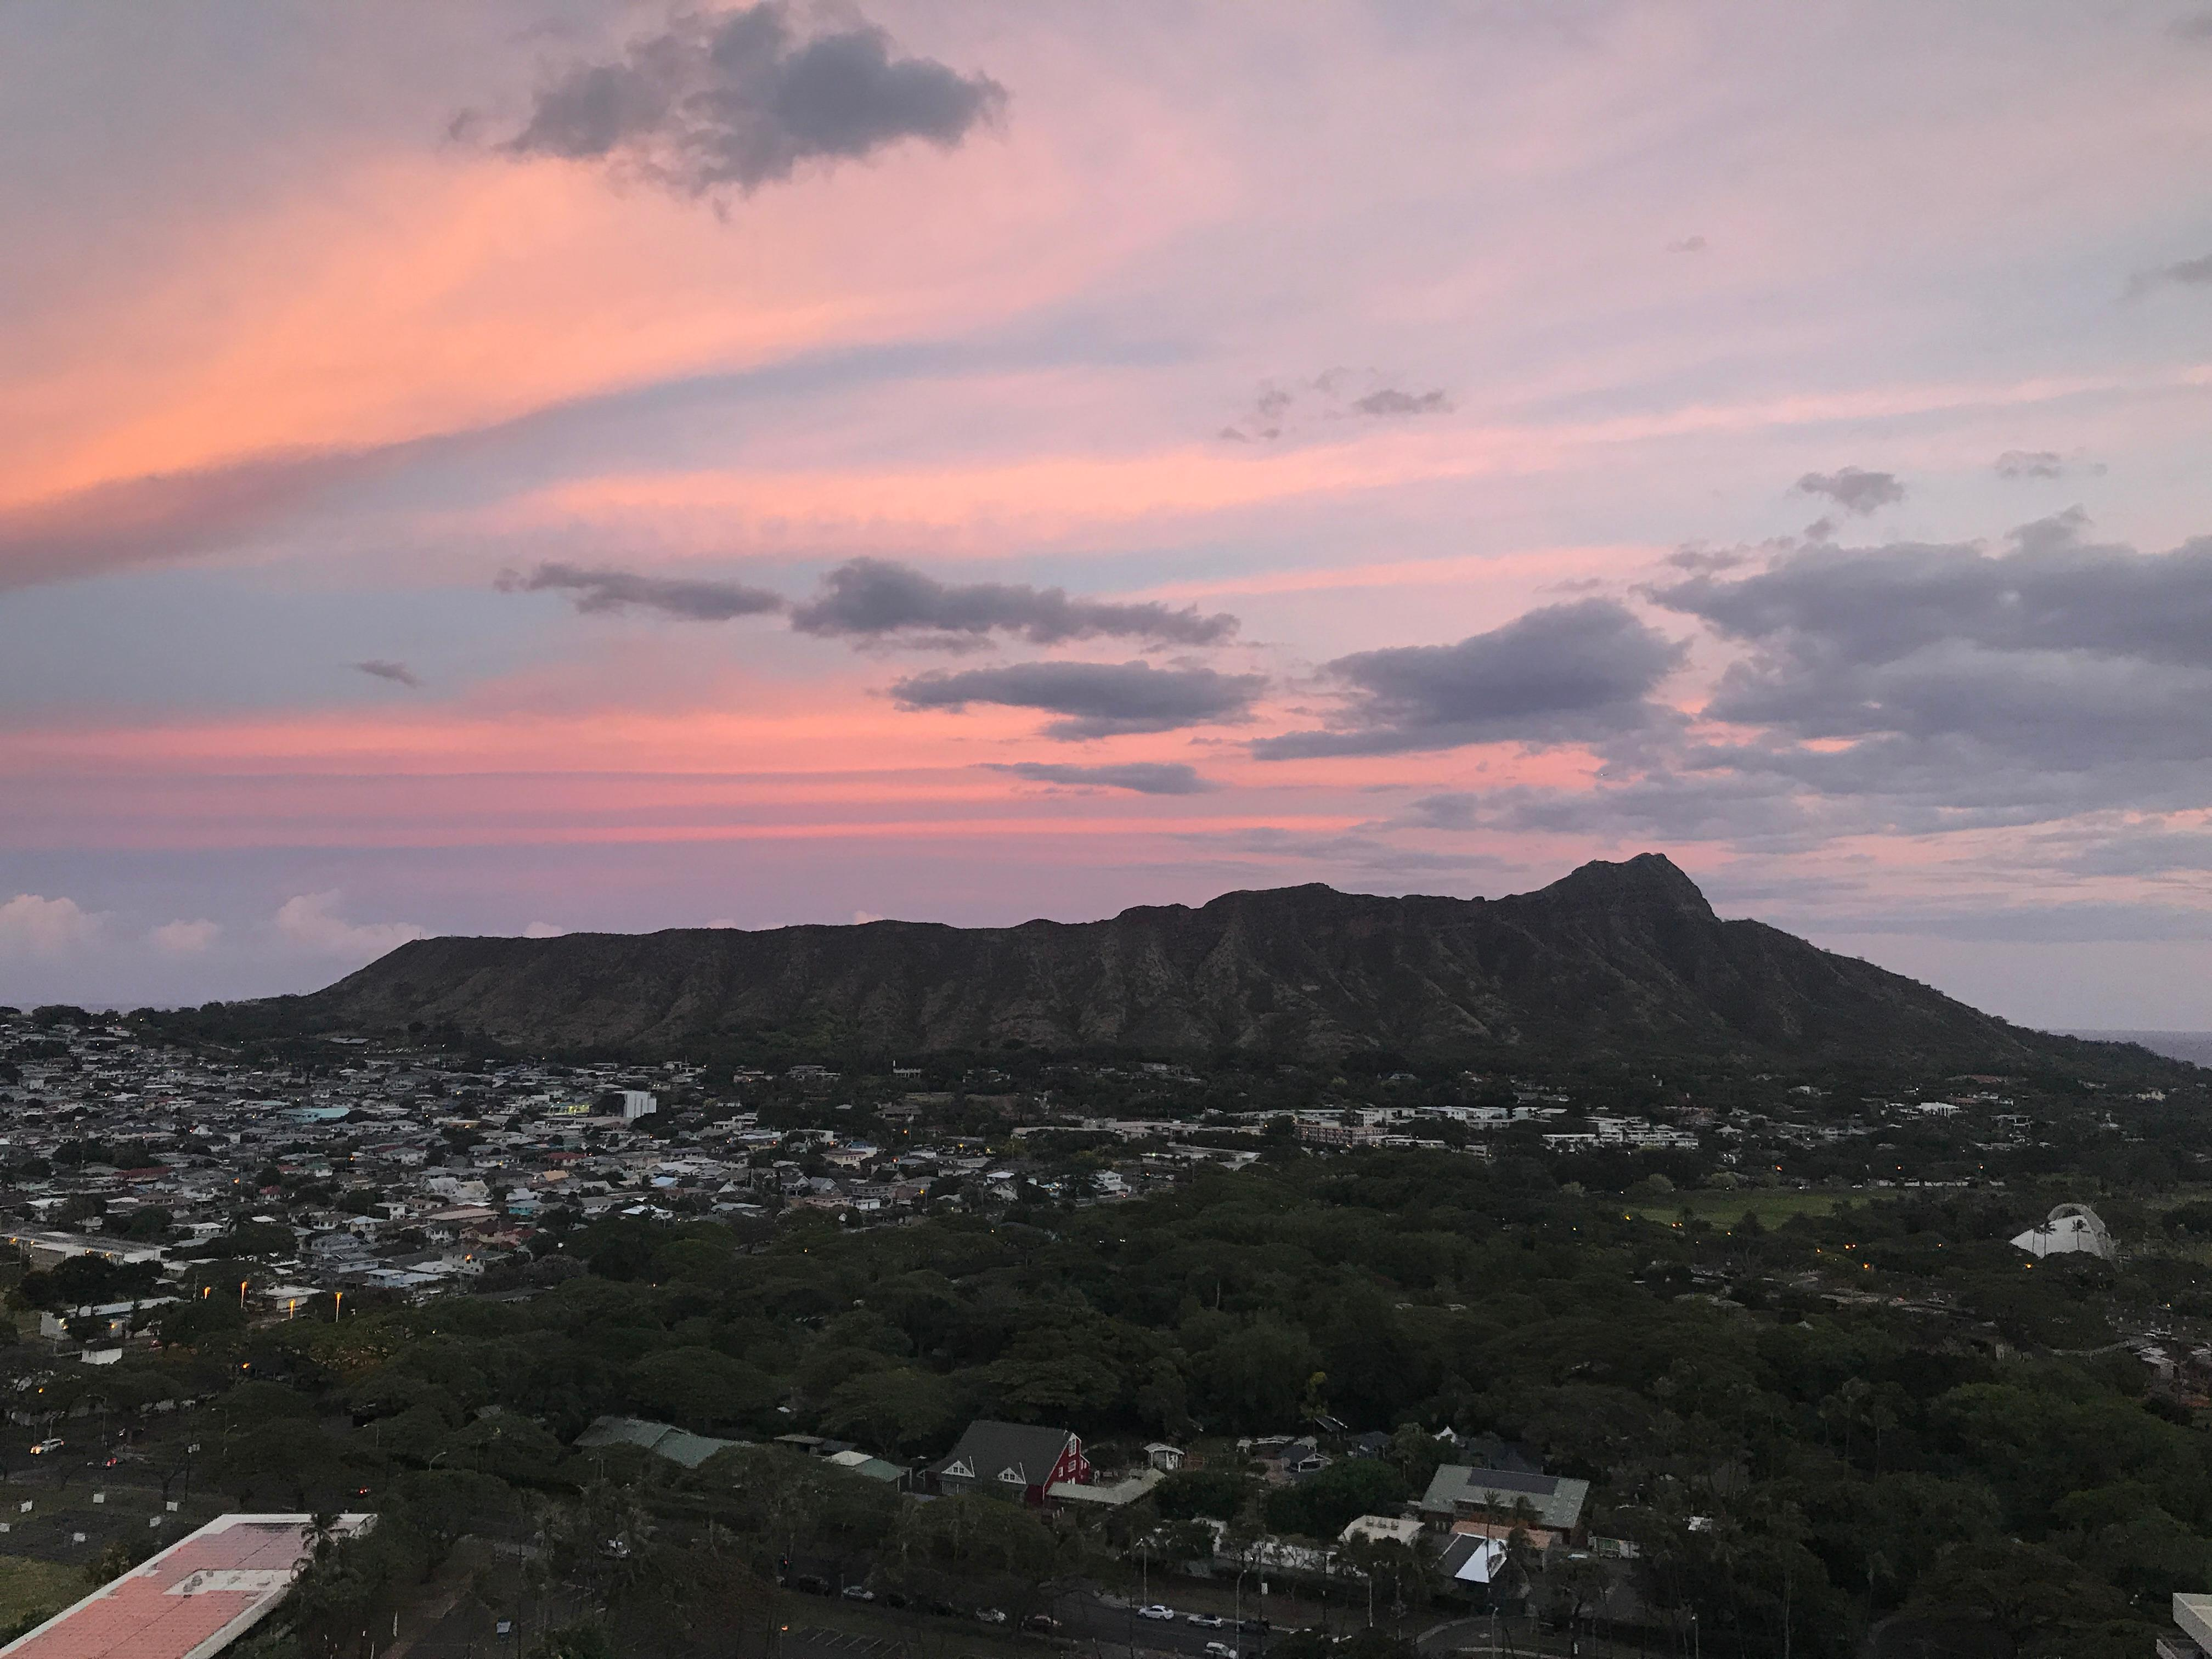 View from our balcony of Diamond Head